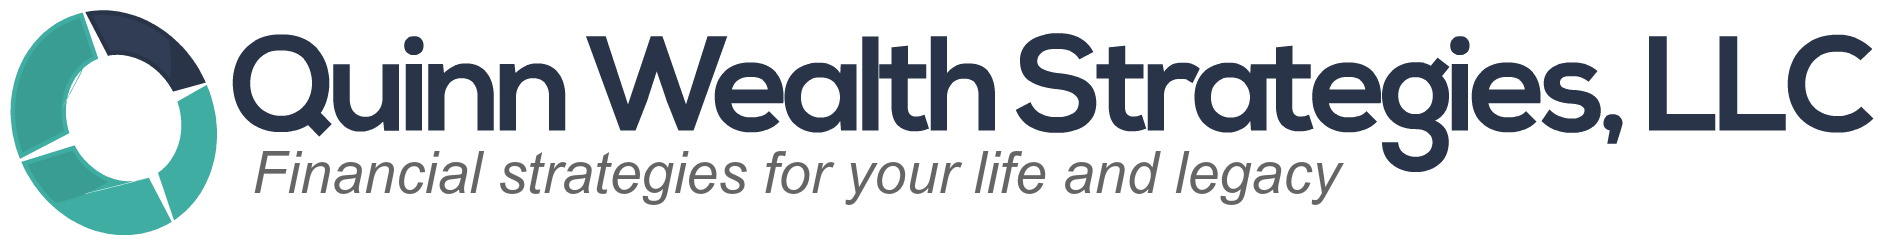 Quinn Wealth Strategies, LLC Logo